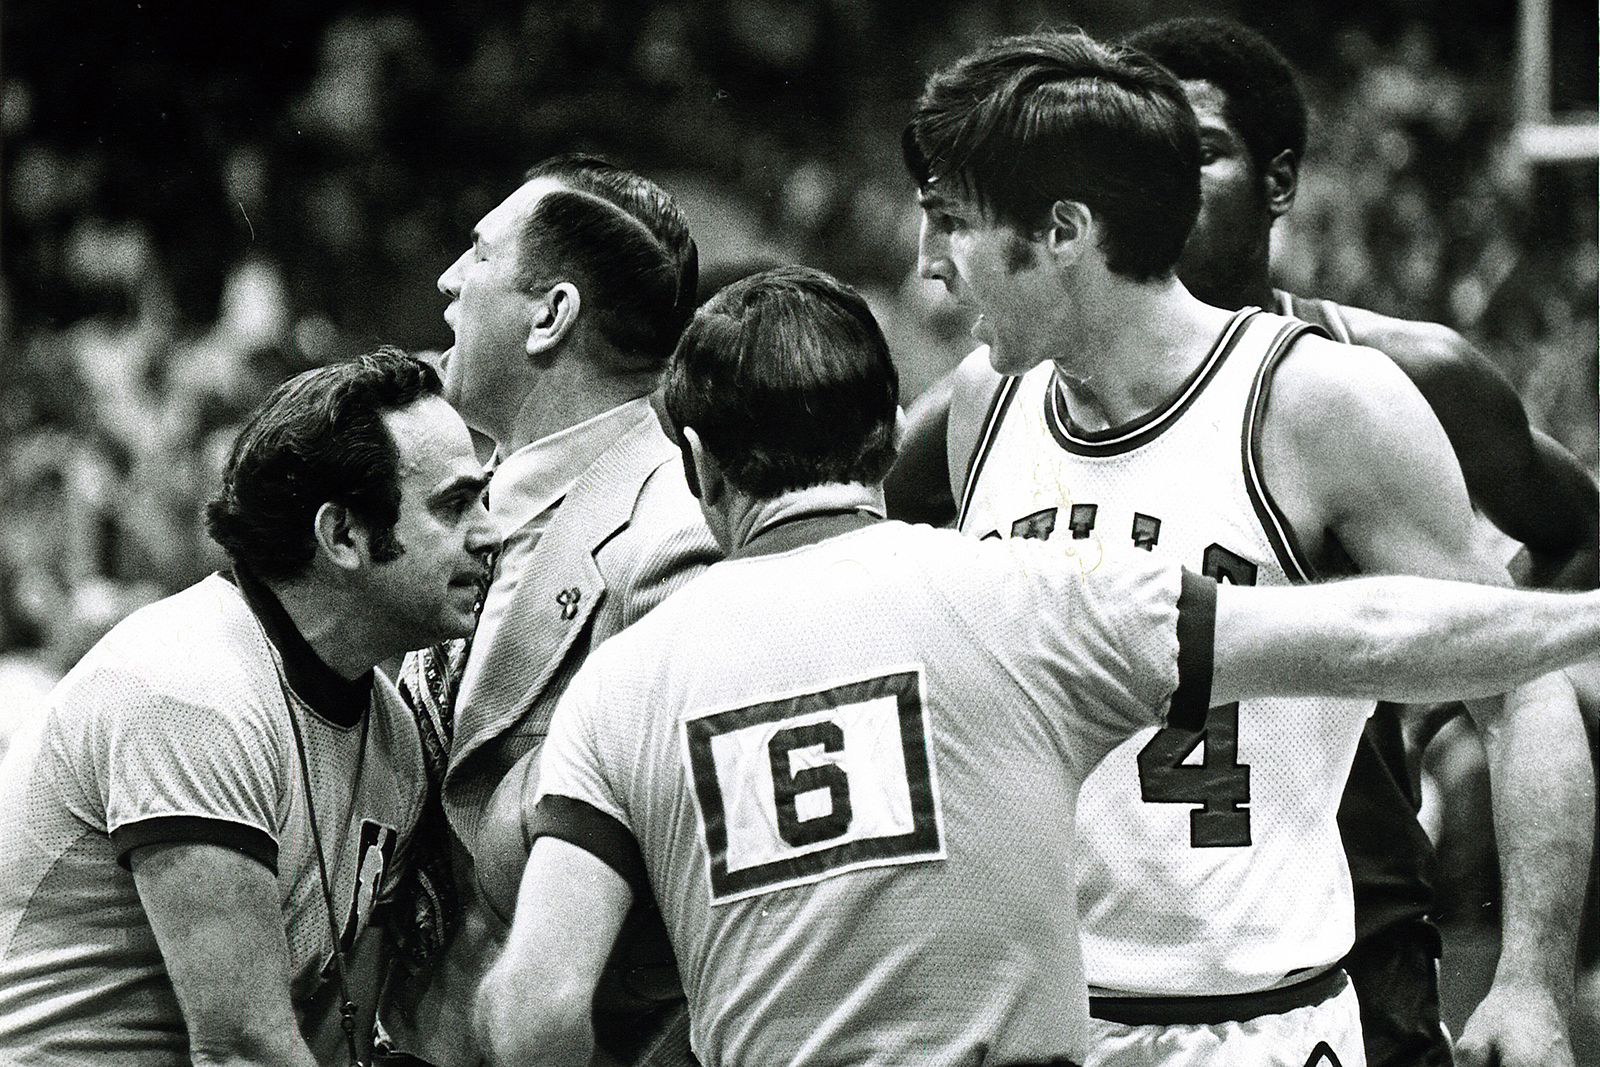 Jerry Sloan on court during the 1973-1974 NBA season.